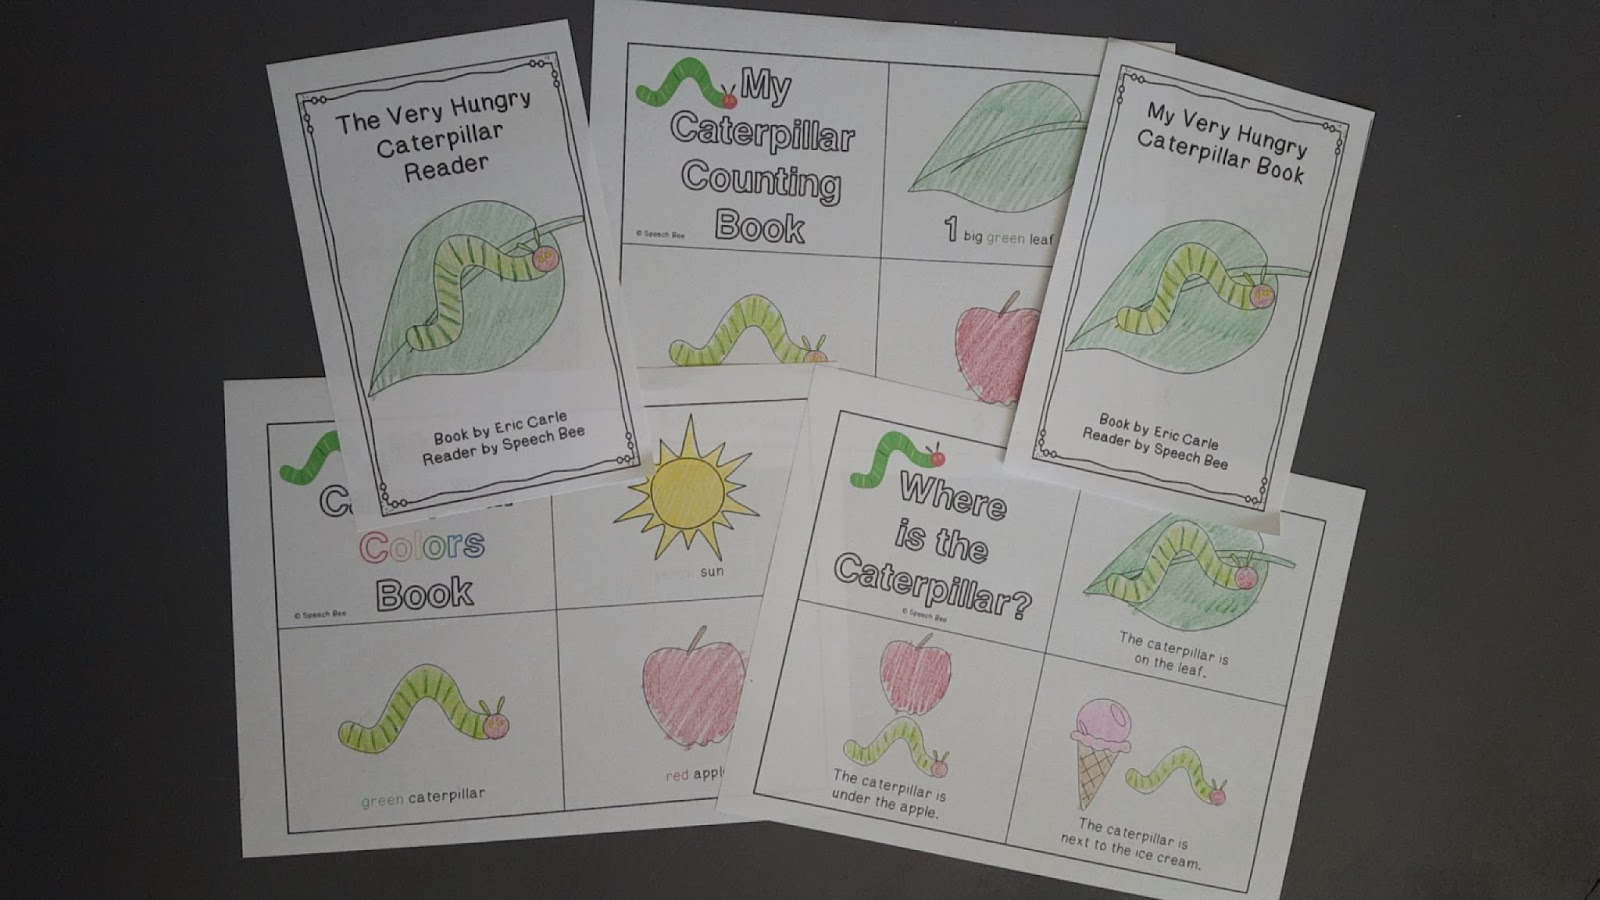 May Slp Must Have Very Hungry Caterpillar Complete